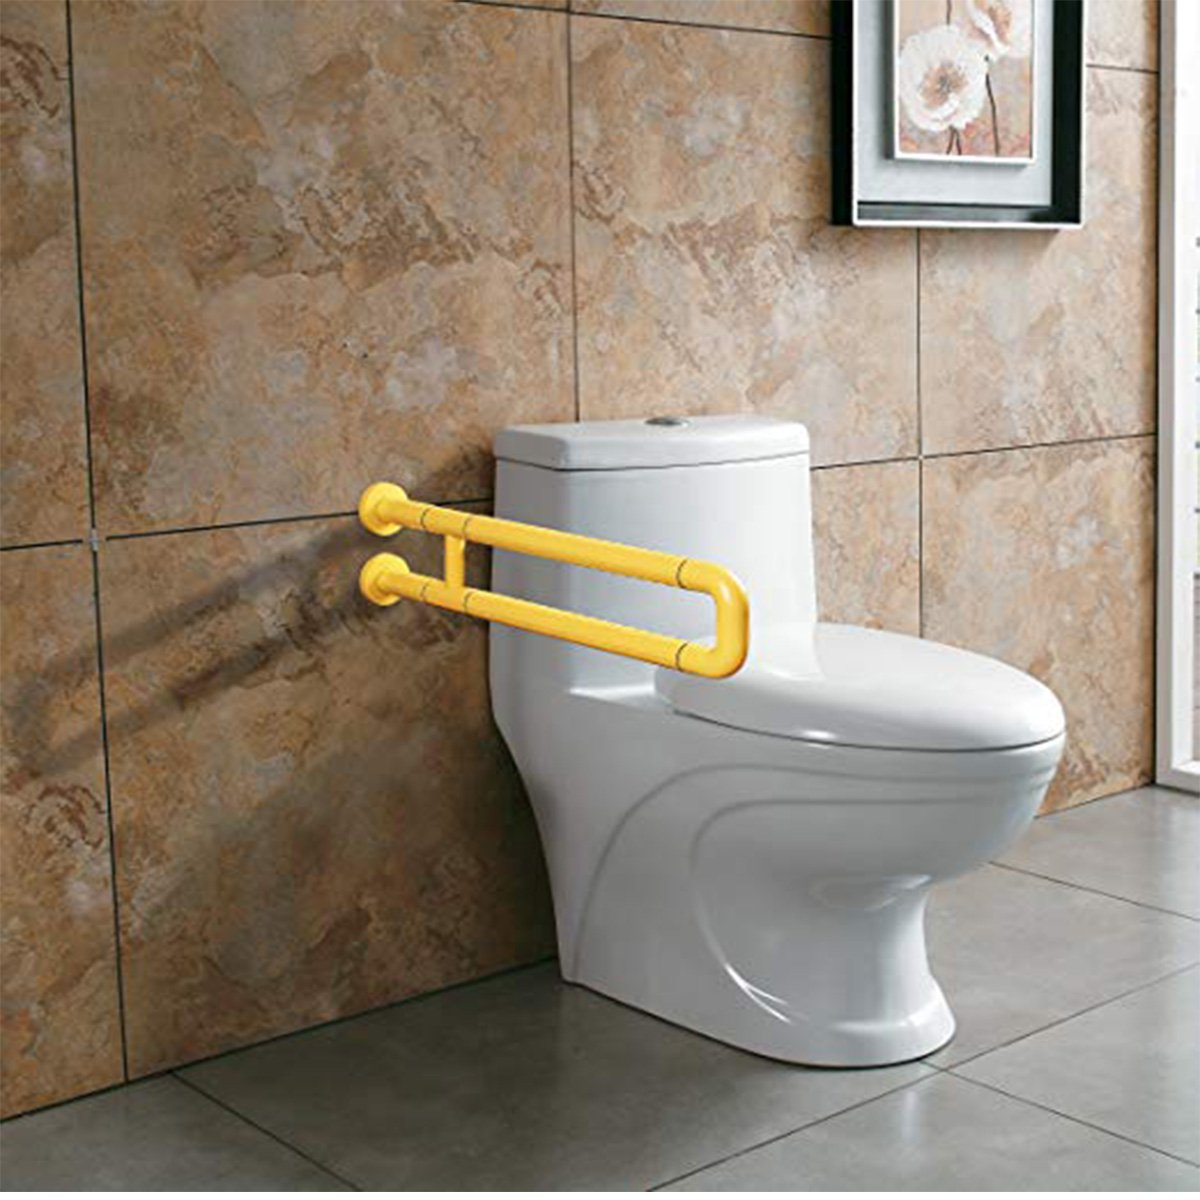 TiKing Grab Bars for Toilet,Toilet Grab Bars for Bathroom and Grab Bars for Toilets Ada Requirements - Safety Hand Rail Support - Handicap, Elderly, Injury,Bath Handle, Non Skid,ADA Compliant.(Yellow) by TiKing